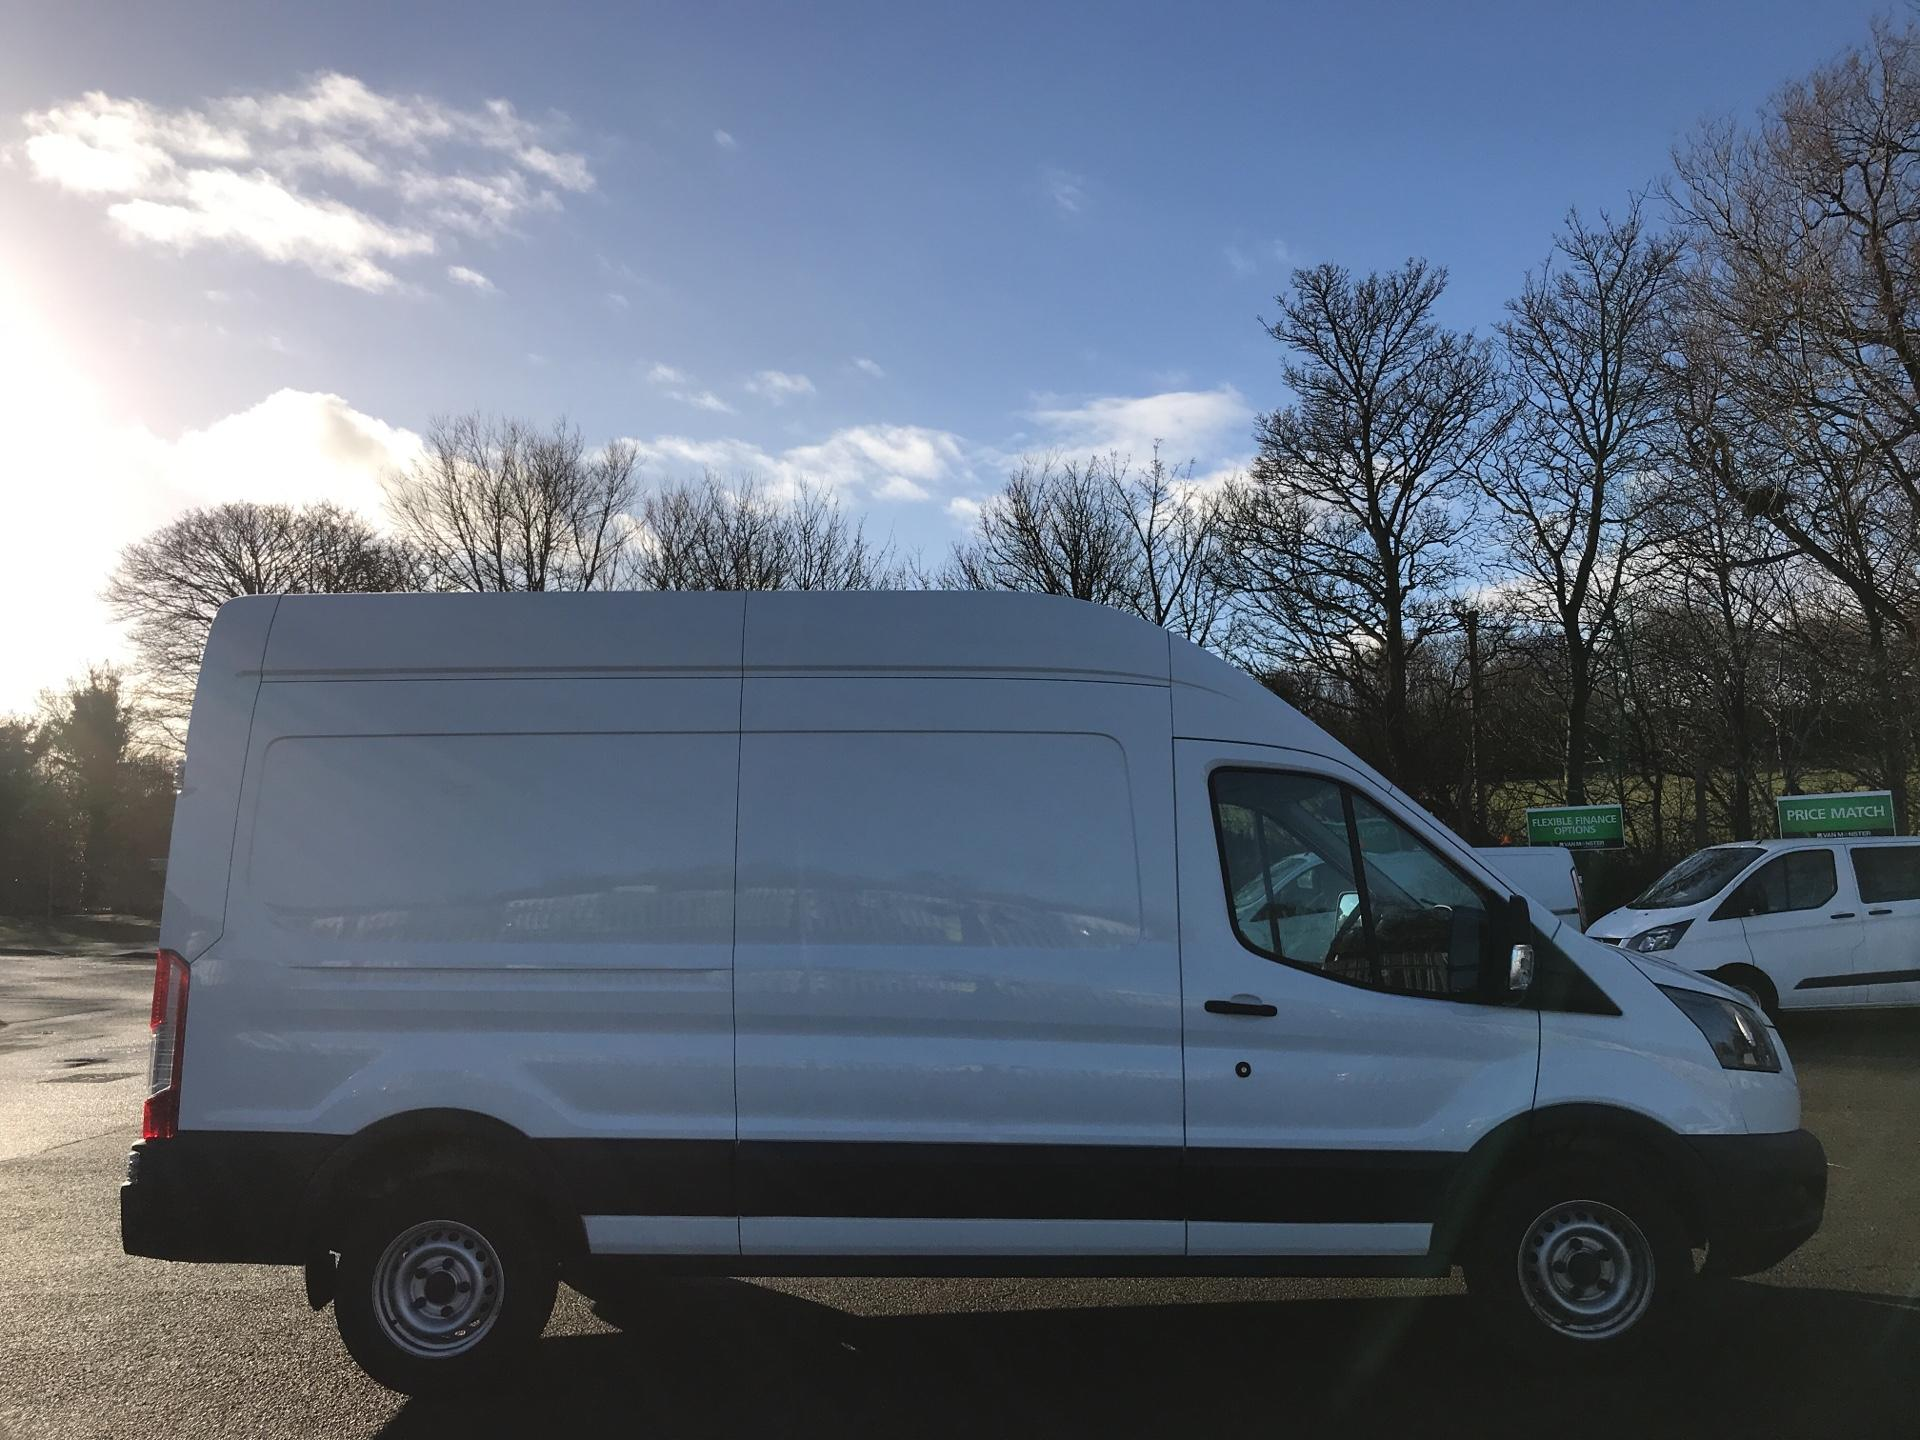 2018 Ford Transit L3 H3 VAN 130PS EURO 6  *VALUE RANGE VEHICLE - CONDITION REFLECTED IN PRICE*  (SM67MZE) Image 2